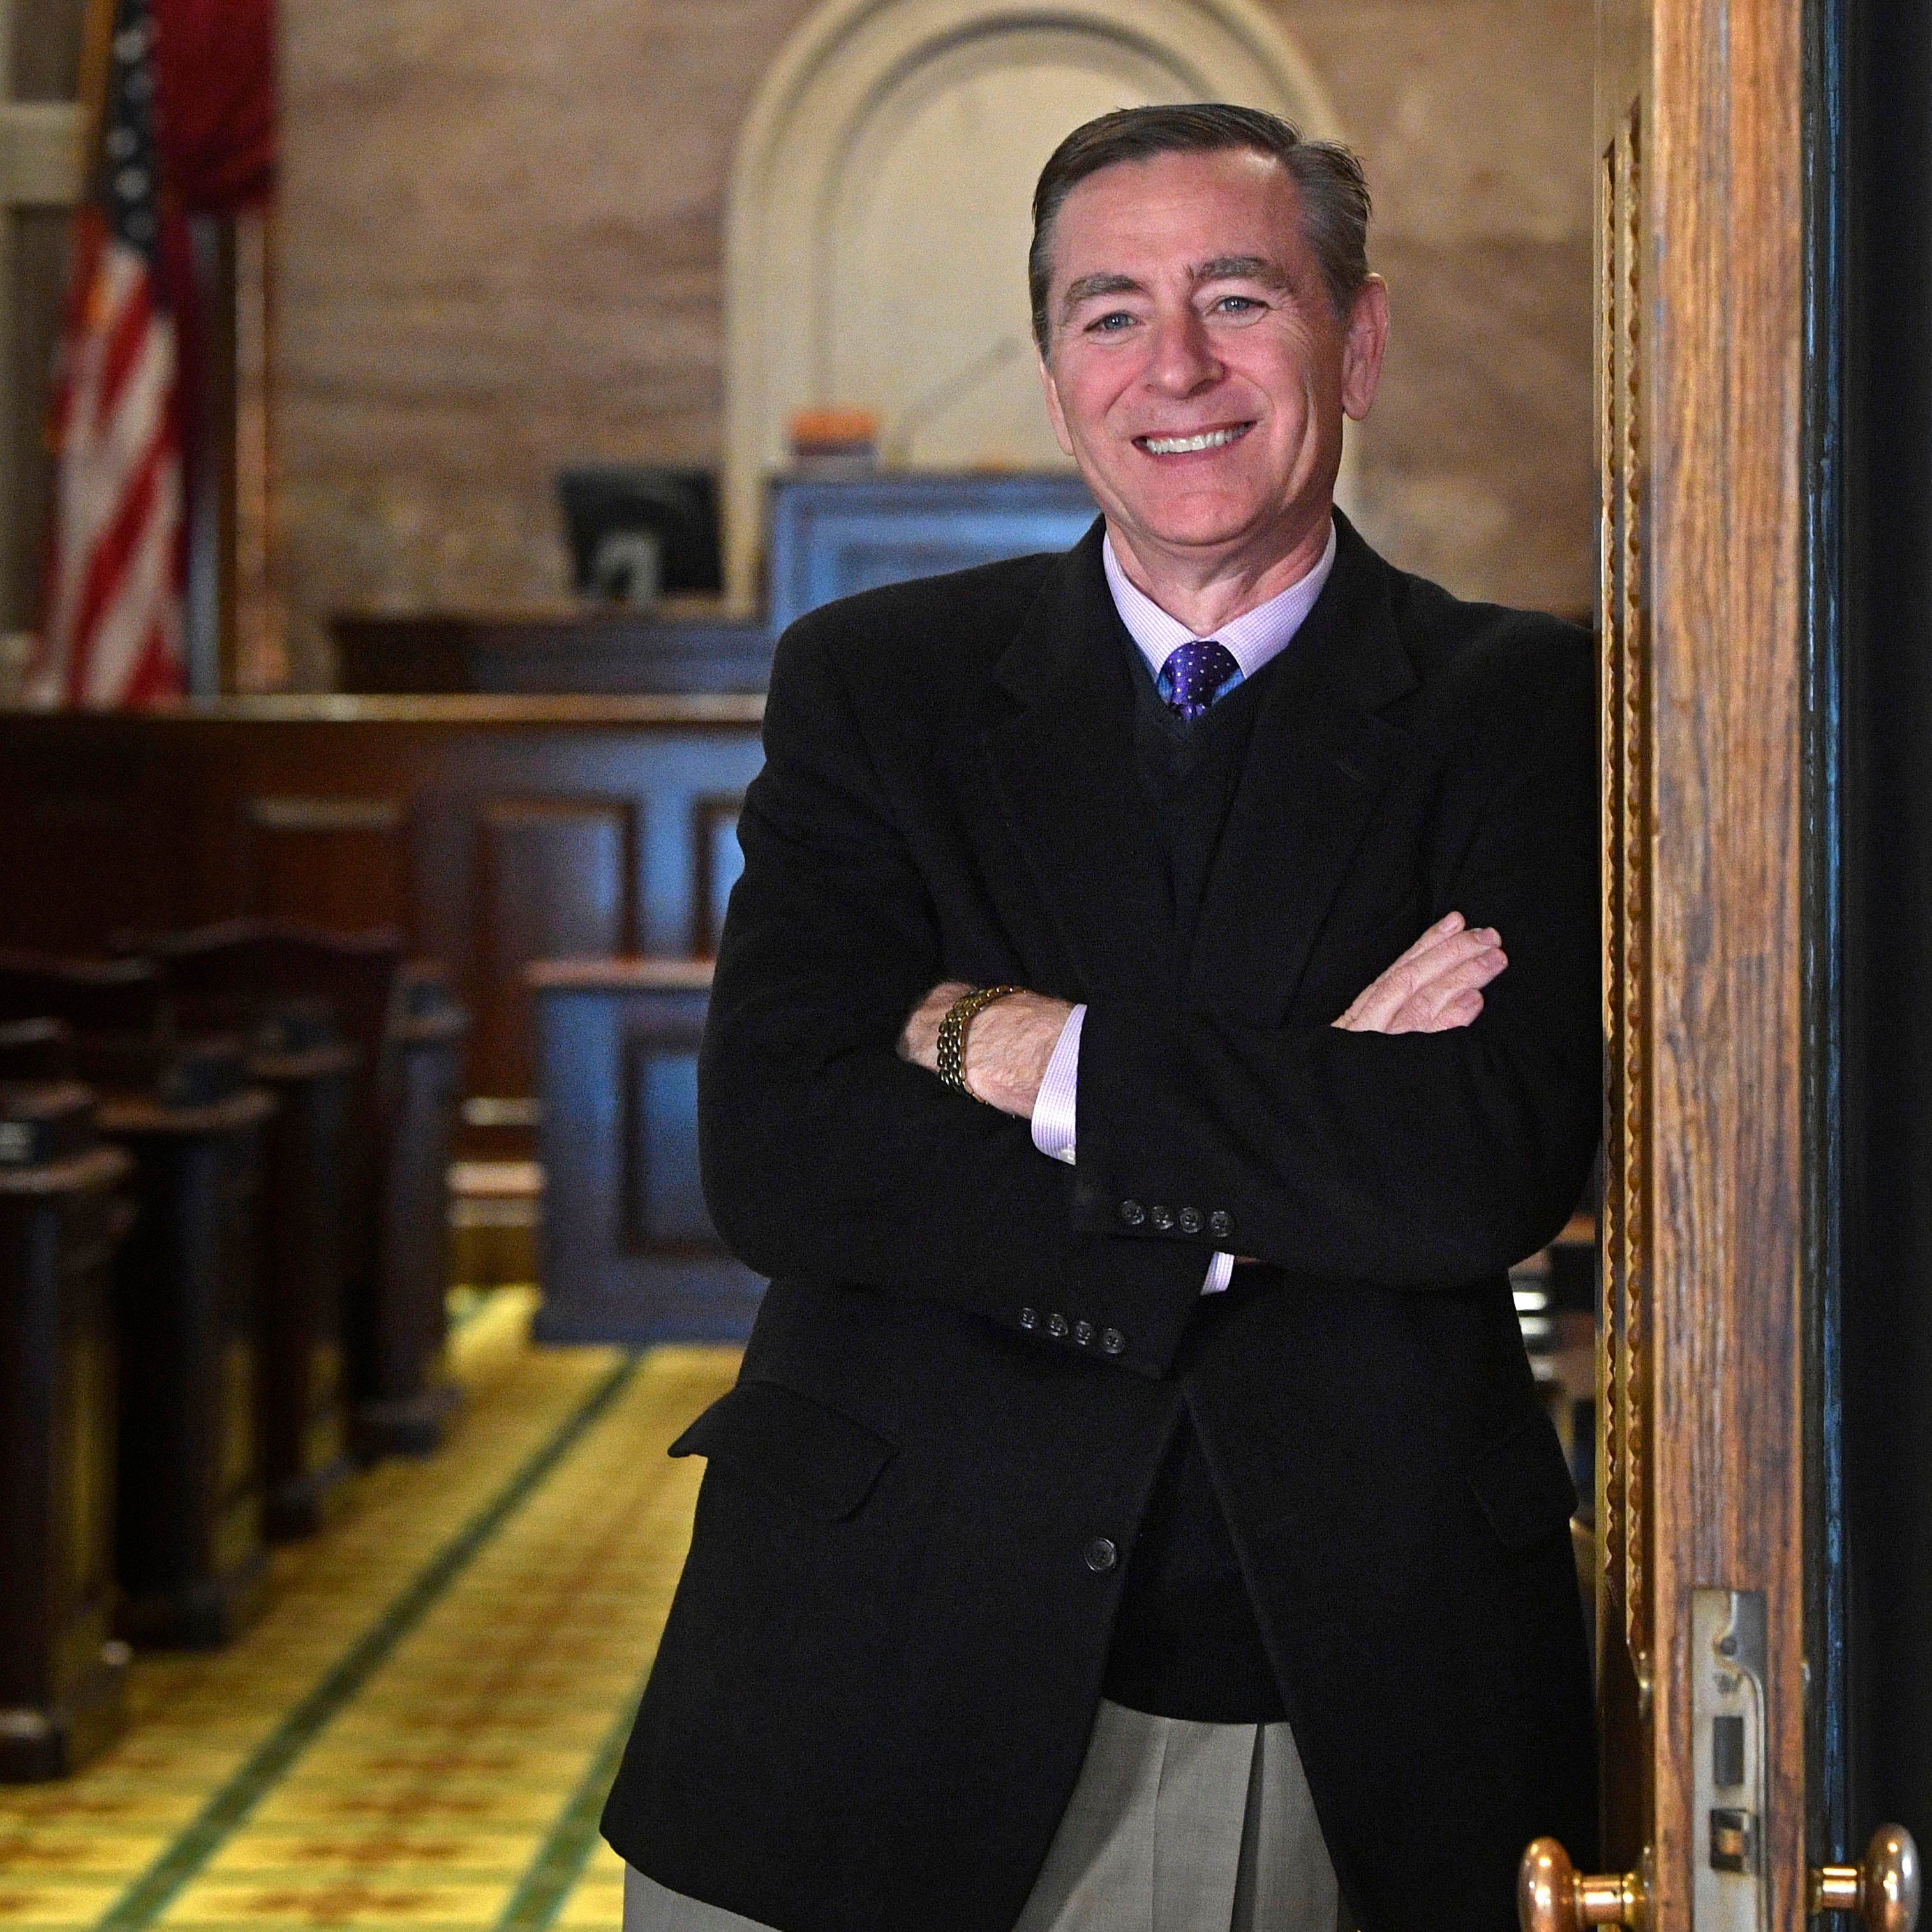 Why incoming House speaker Glen Casada likens himself to an orchestra conductor